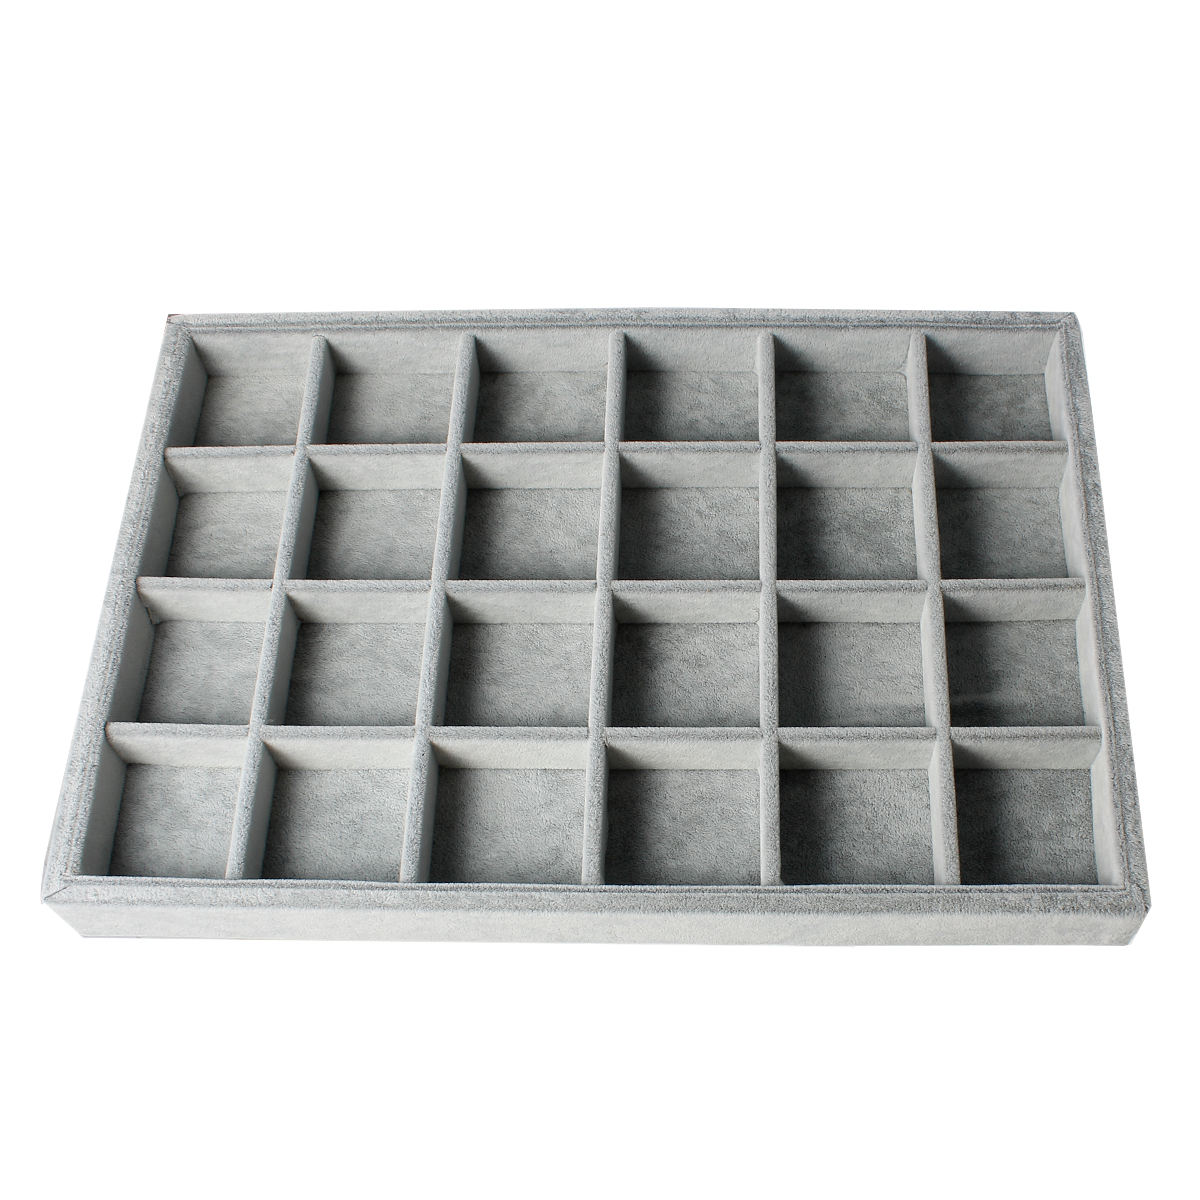 Doreen Box Velvet Clad Plate Gray Flocked 24 Compartment Jewelry Display Tray Insert Rectangle 35cm x 24cm ,1 PC 2017 new velvet flocked